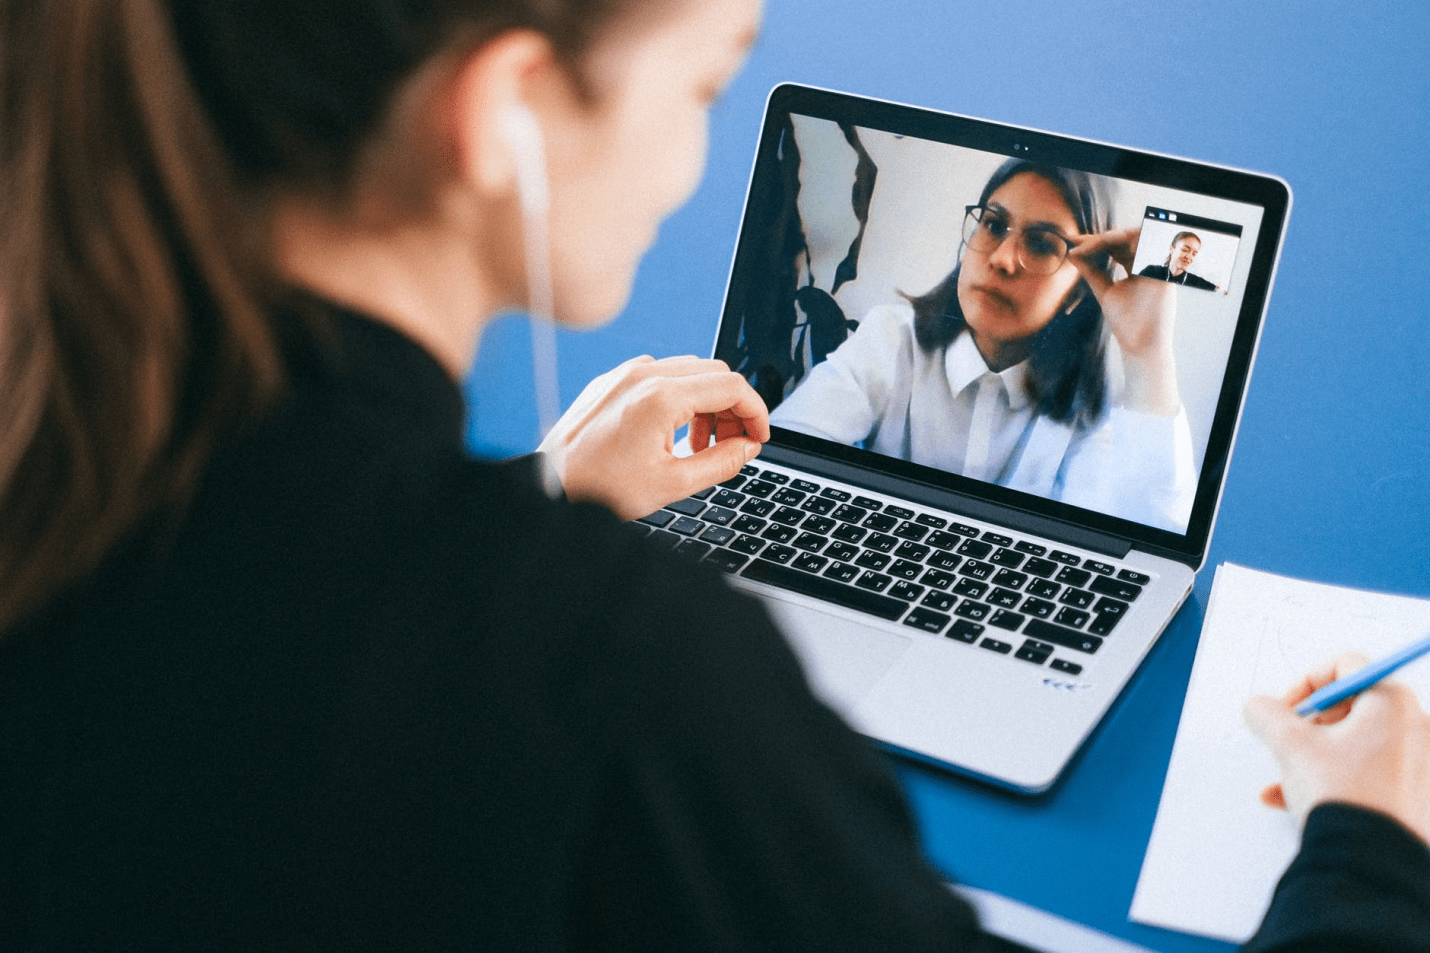 5 Effective Ways to Evaluate Job Candidates Remotely